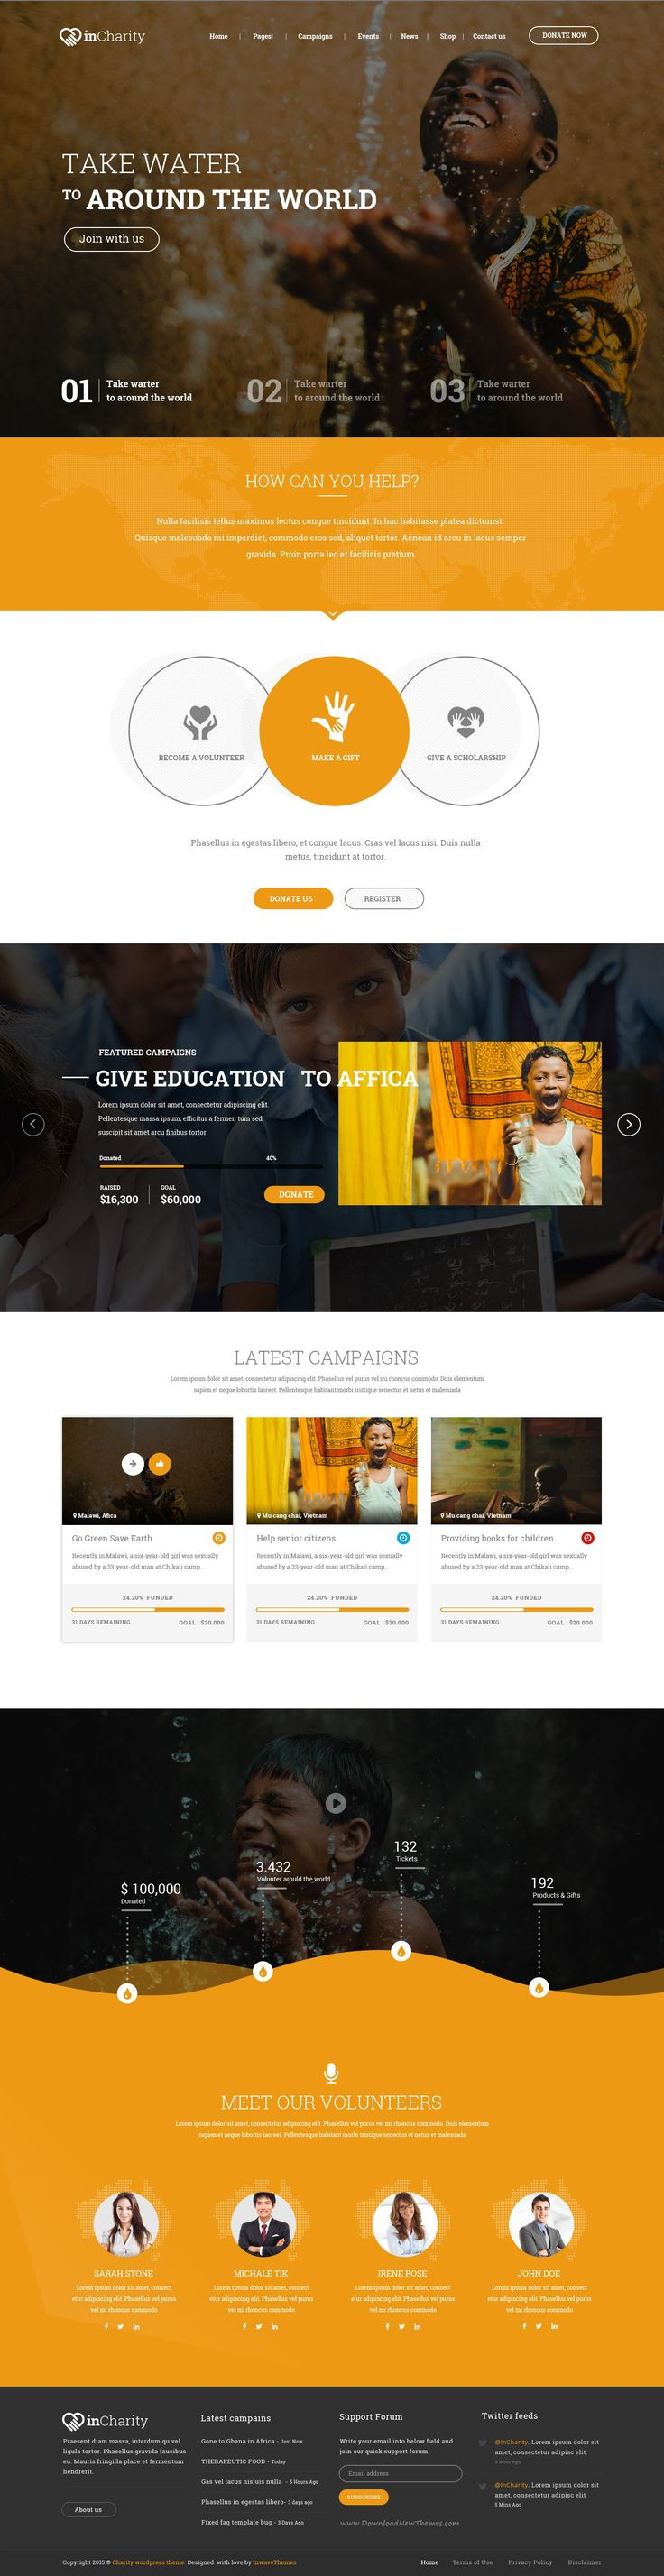 buy incharity charity fundraising psd template by inwavethemes on themeforest incharity might be one of the best psd template at themeforest for - Web Page Design Ideas